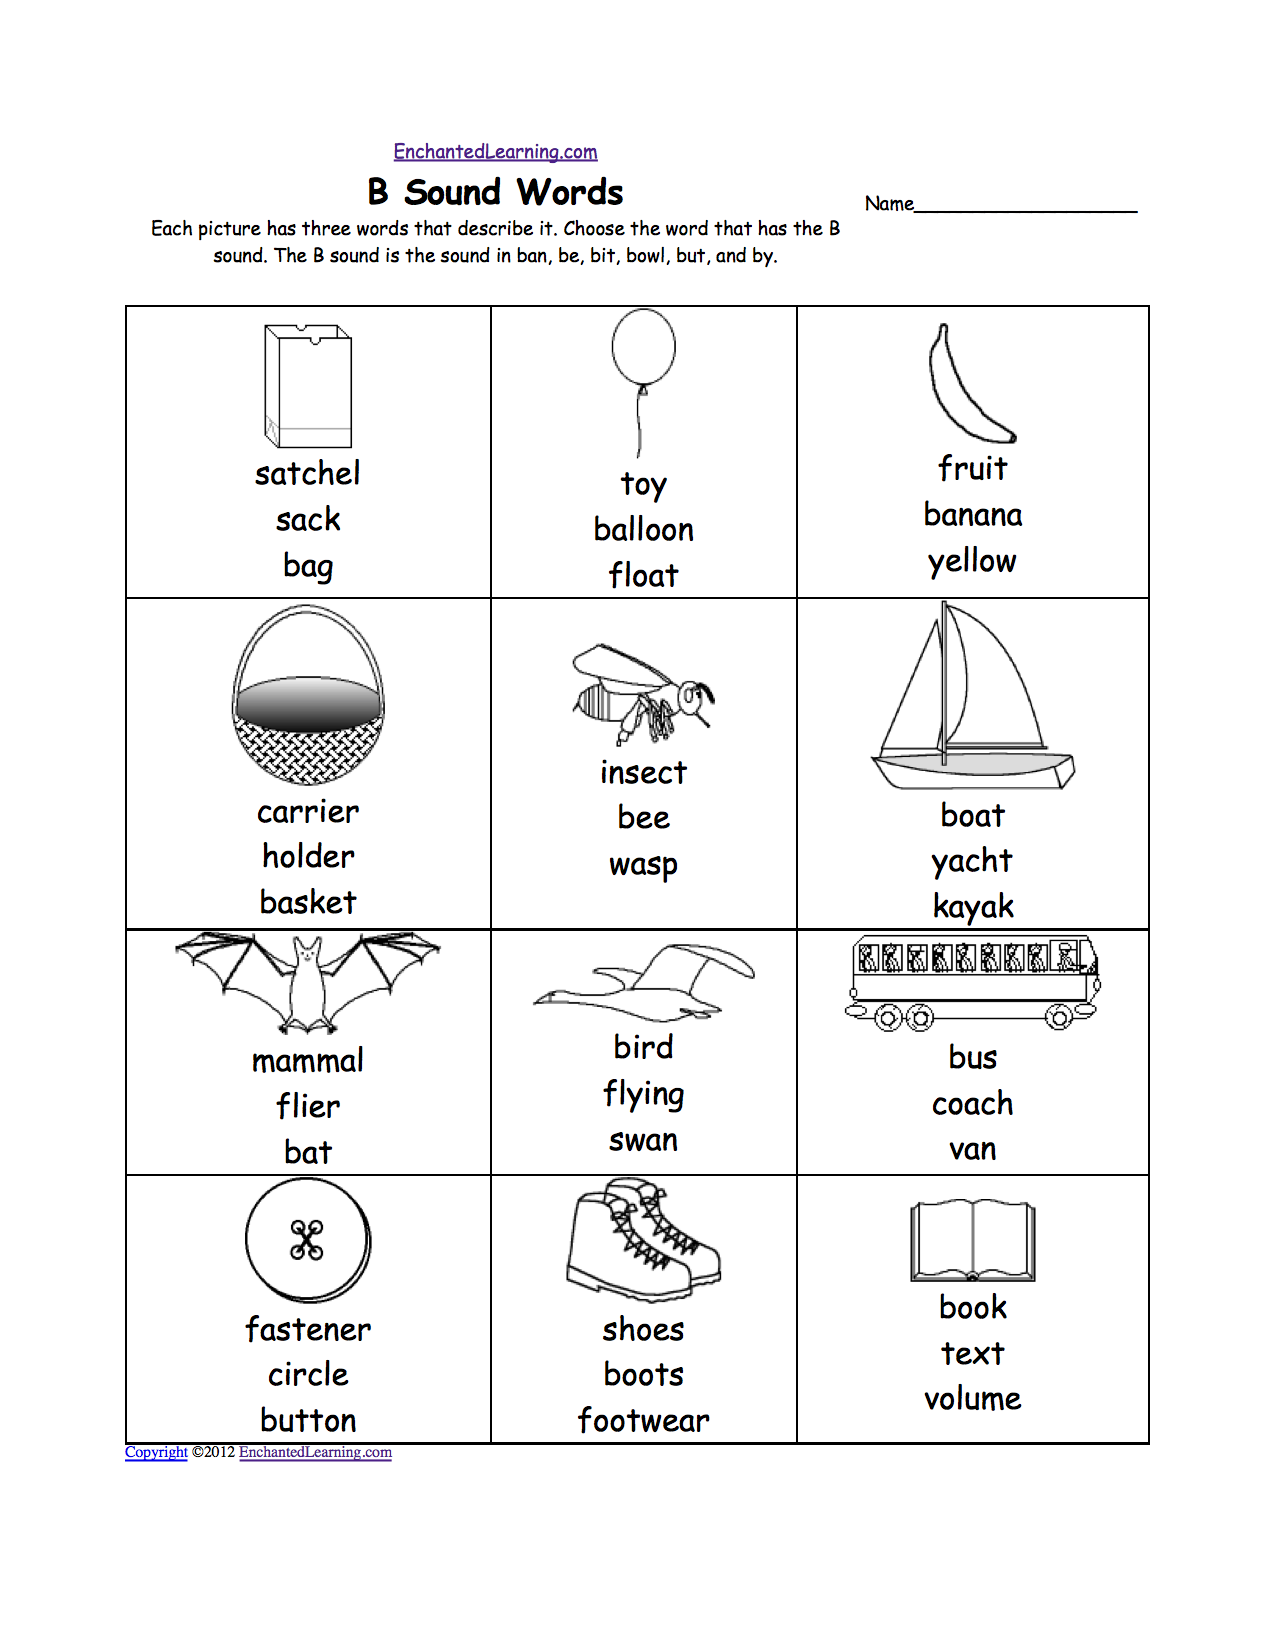 Aldiablosus  Sweet Phonics Worksheets Multiple Choice Worksheets To Print  With Glamorous Quotbquot Sound Phonics Worksheet Multiple Choice Each Picture Has Three Words That Describe It Choose The Word That Has A Quotbquot Sound The Quotbquot Sound Is The Sound  With Adorable Convert Mixed Numbers To Improper Fractions Worksheet Also Cognates Worksheet In Addition Partial Product Multiplication Worksheet And Math Coordinate Plane Worksheets As Well As Compound Subjects And Verbs Worksheet Additionally Modern Biology Worksheet Answers From Enchantedlearningcom With Aldiablosus  Glamorous Phonics Worksheets Multiple Choice Worksheets To Print  With Adorable Quotbquot Sound Phonics Worksheet Multiple Choice Each Picture Has Three Words That Describe It Choose The Word That Has A Quotbquot Sound The Quotbquot Sound Is The Sound  And Sweet Convert Mixed Numbers To Improper Fractions Worksheet Also Cognates Worksheet In Addition Partial Product Multiplication Worksheet From Enchantedlearningcom